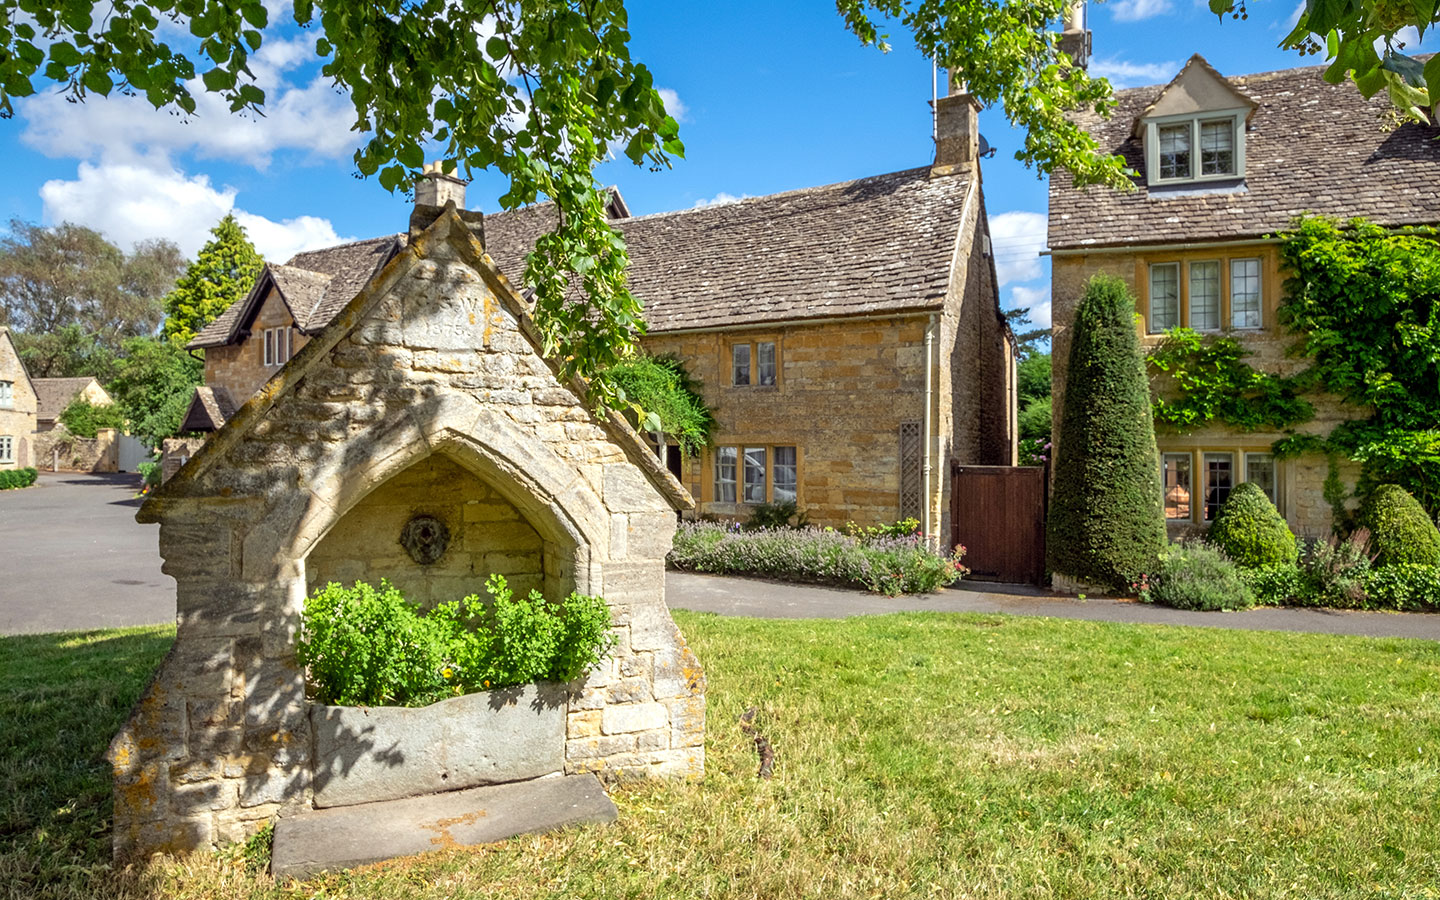 Traditional Cotswolds stone cottages when visiting Lower Slaughter